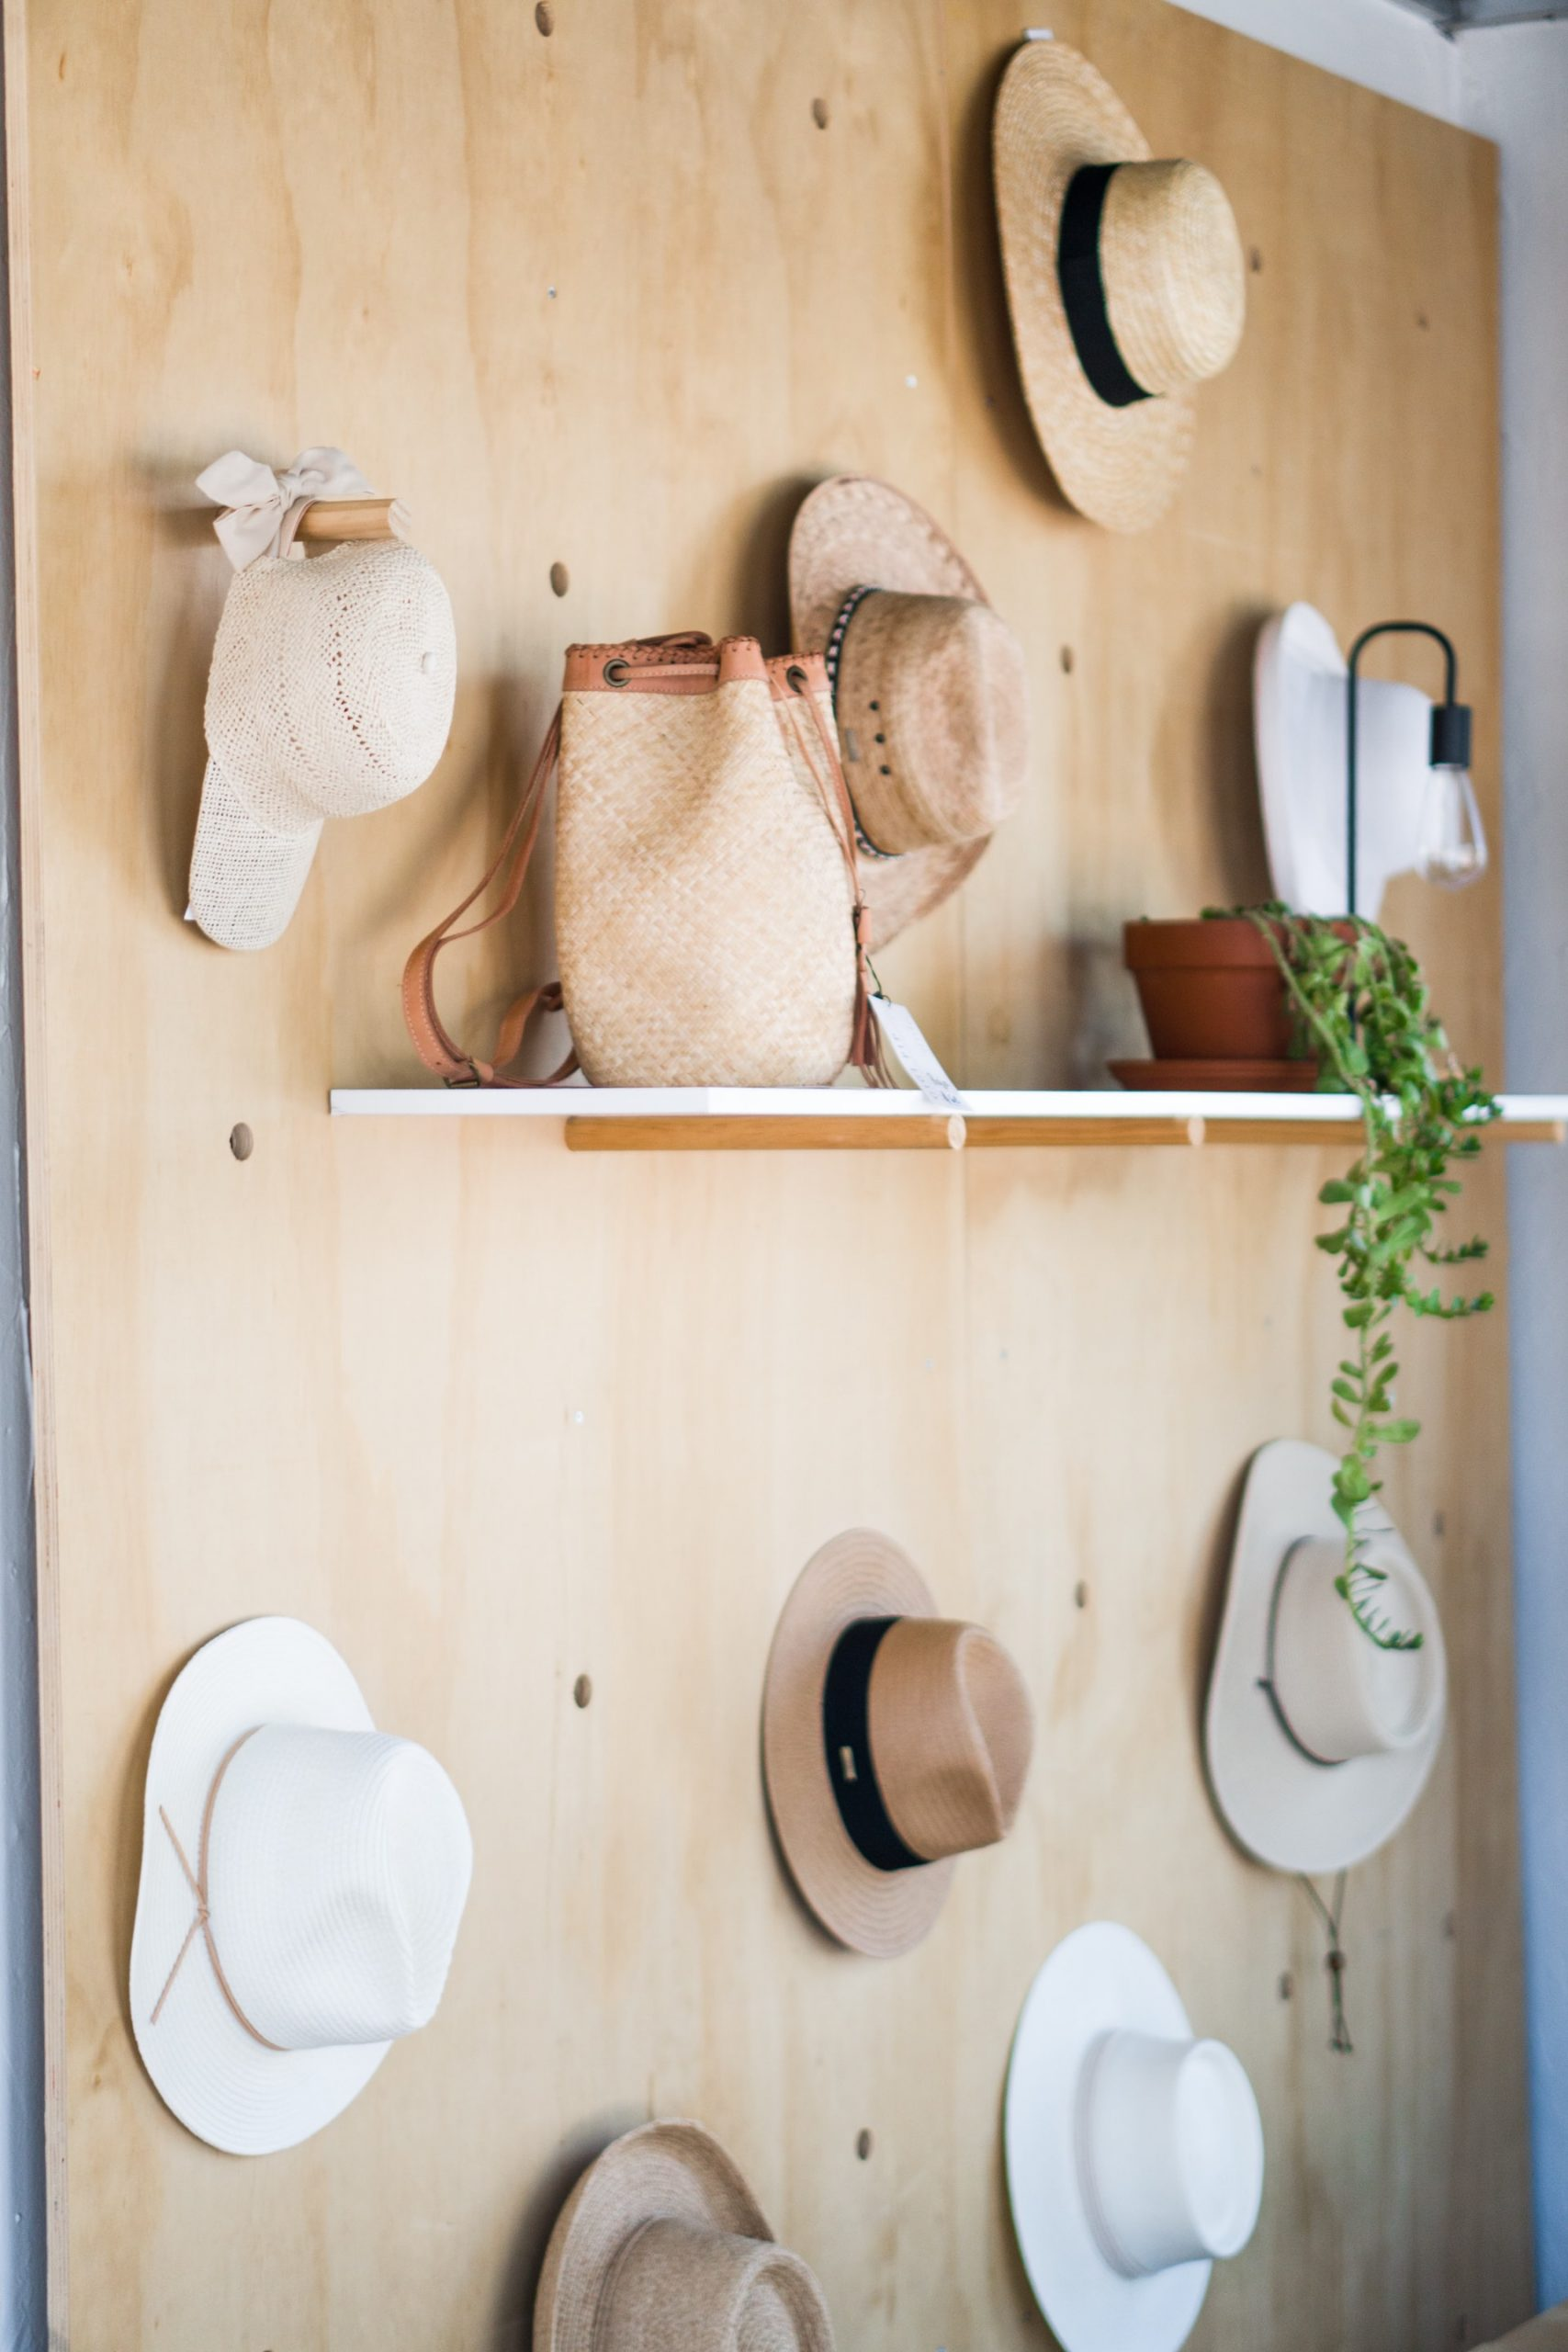 hat stand and peg board display